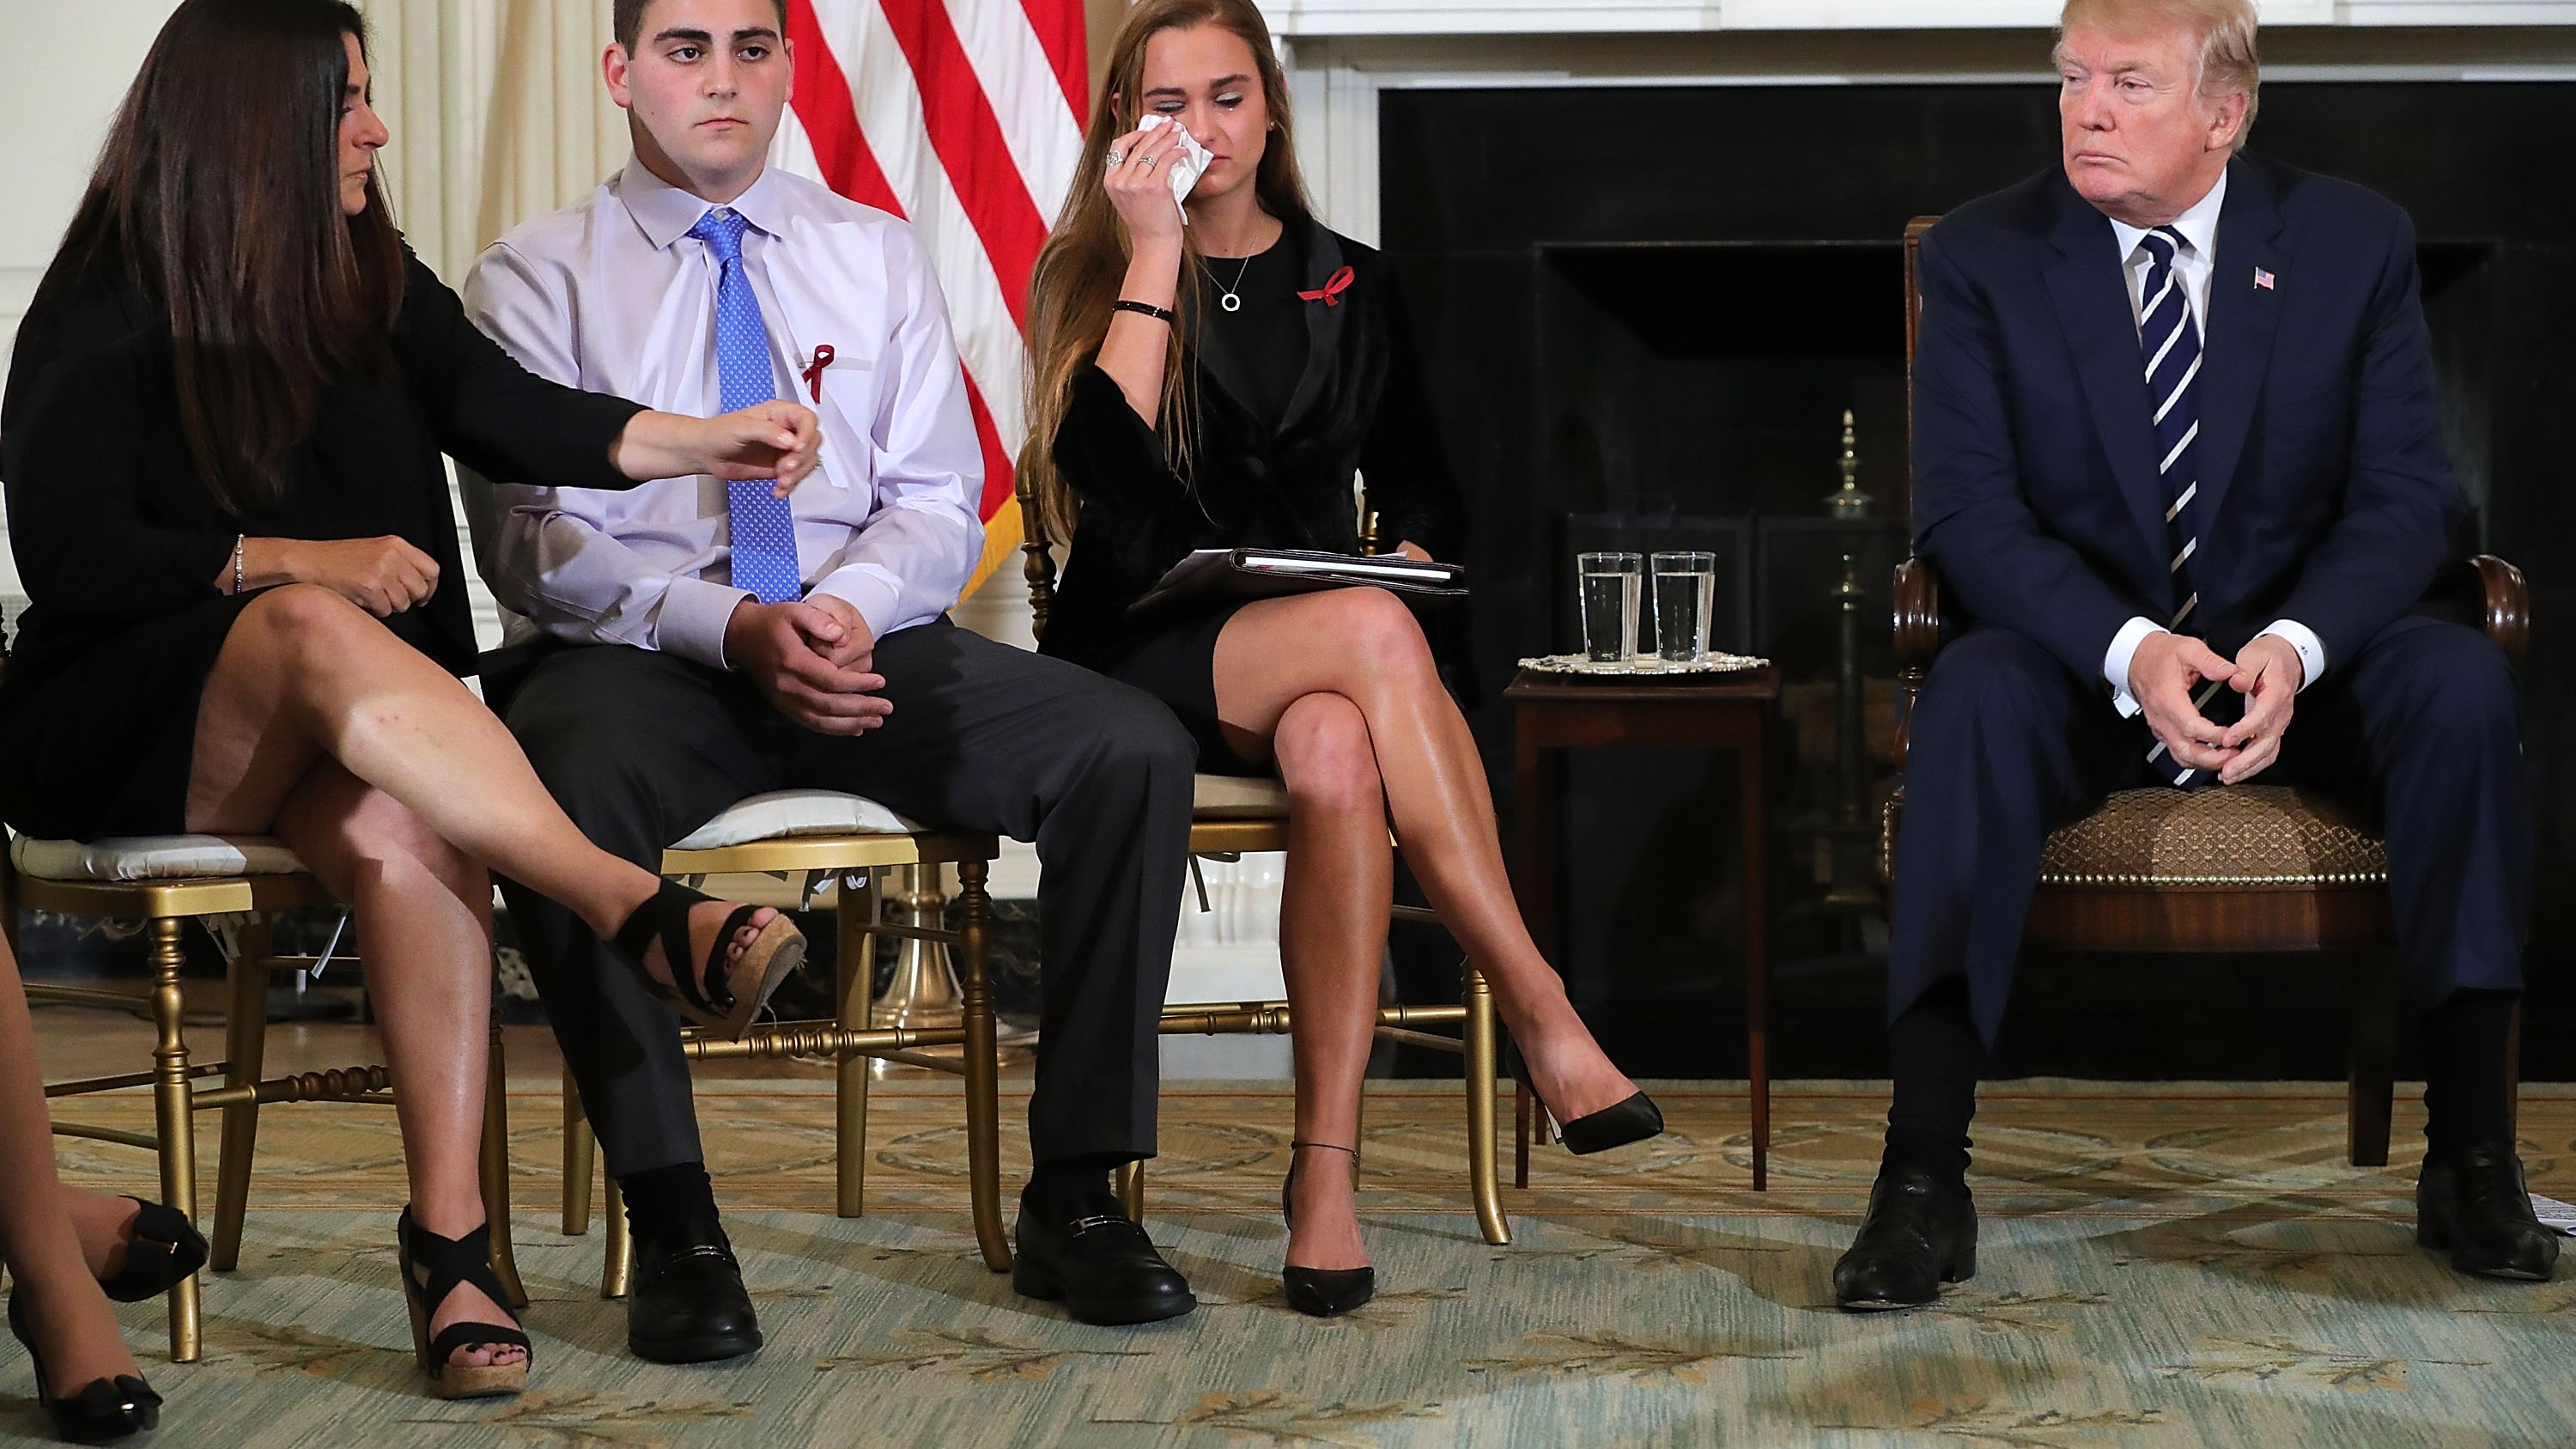 Trump Proposes Arming Teachers While Meeting With School